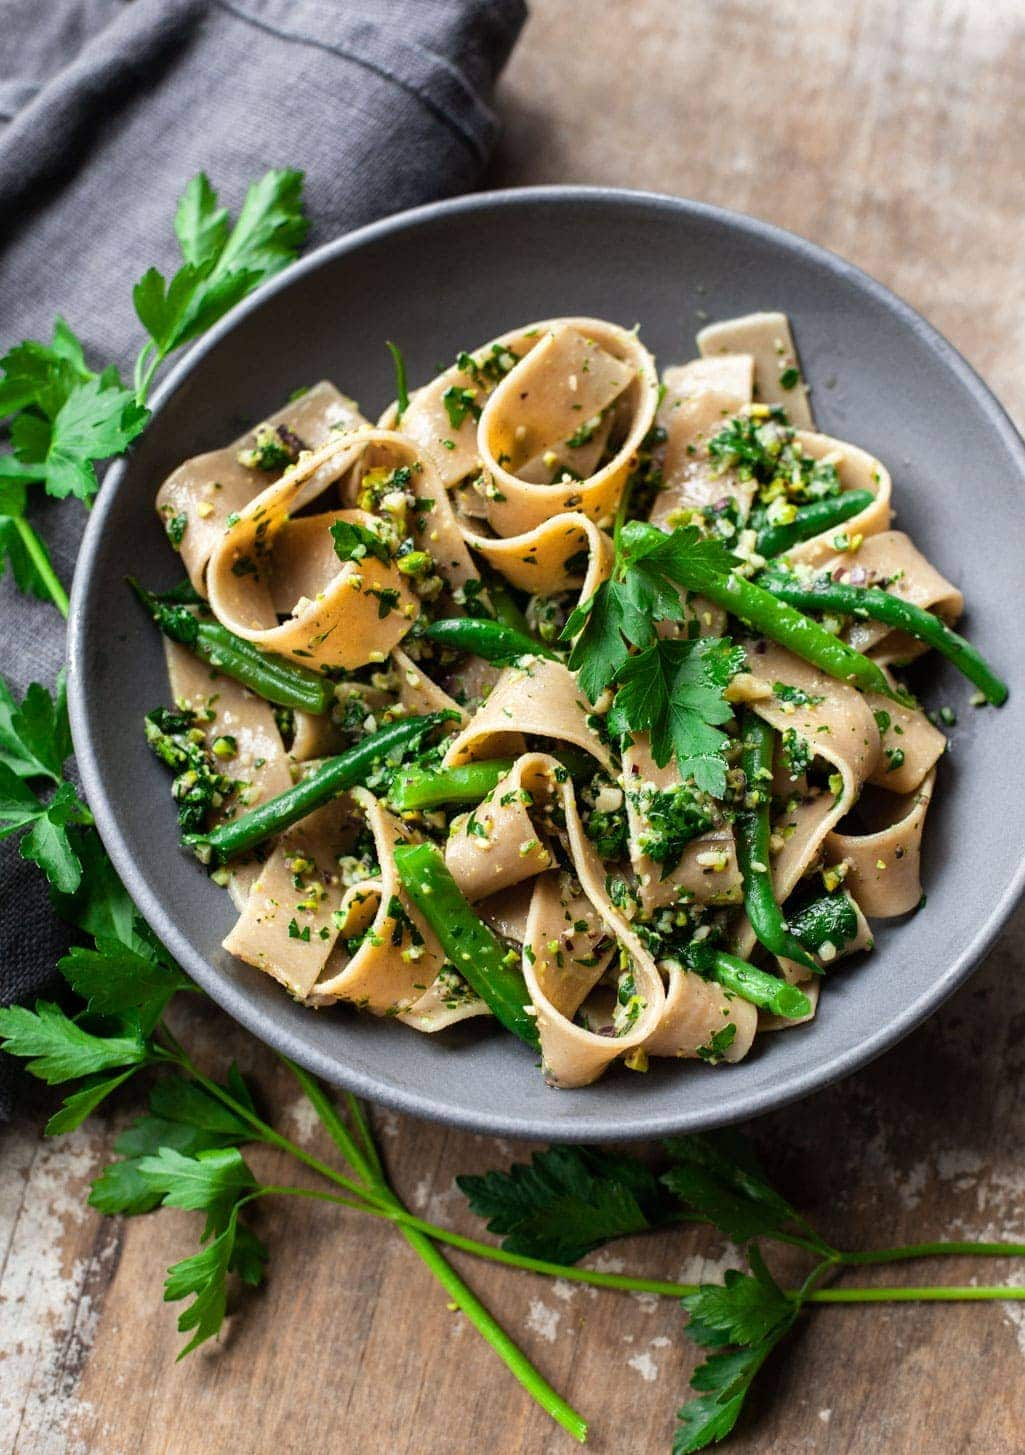 Pappardelle Pasta with Cutting-Board Parsley Pesto Sauce